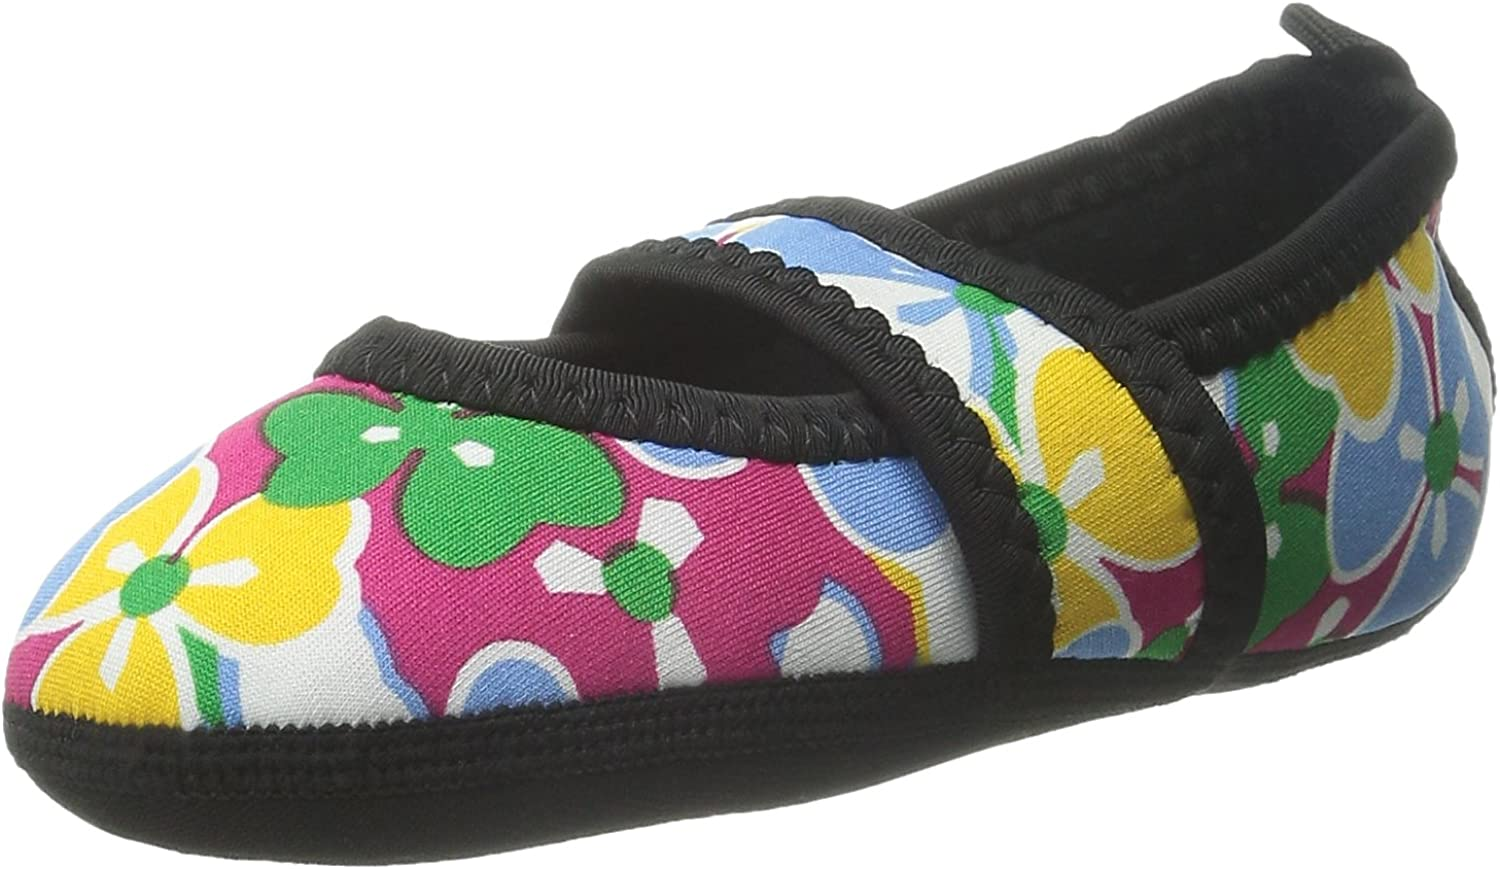 Nufoot Indoor Girls shoes Besty Lou, Pink Flowers, X-Small 2 Count